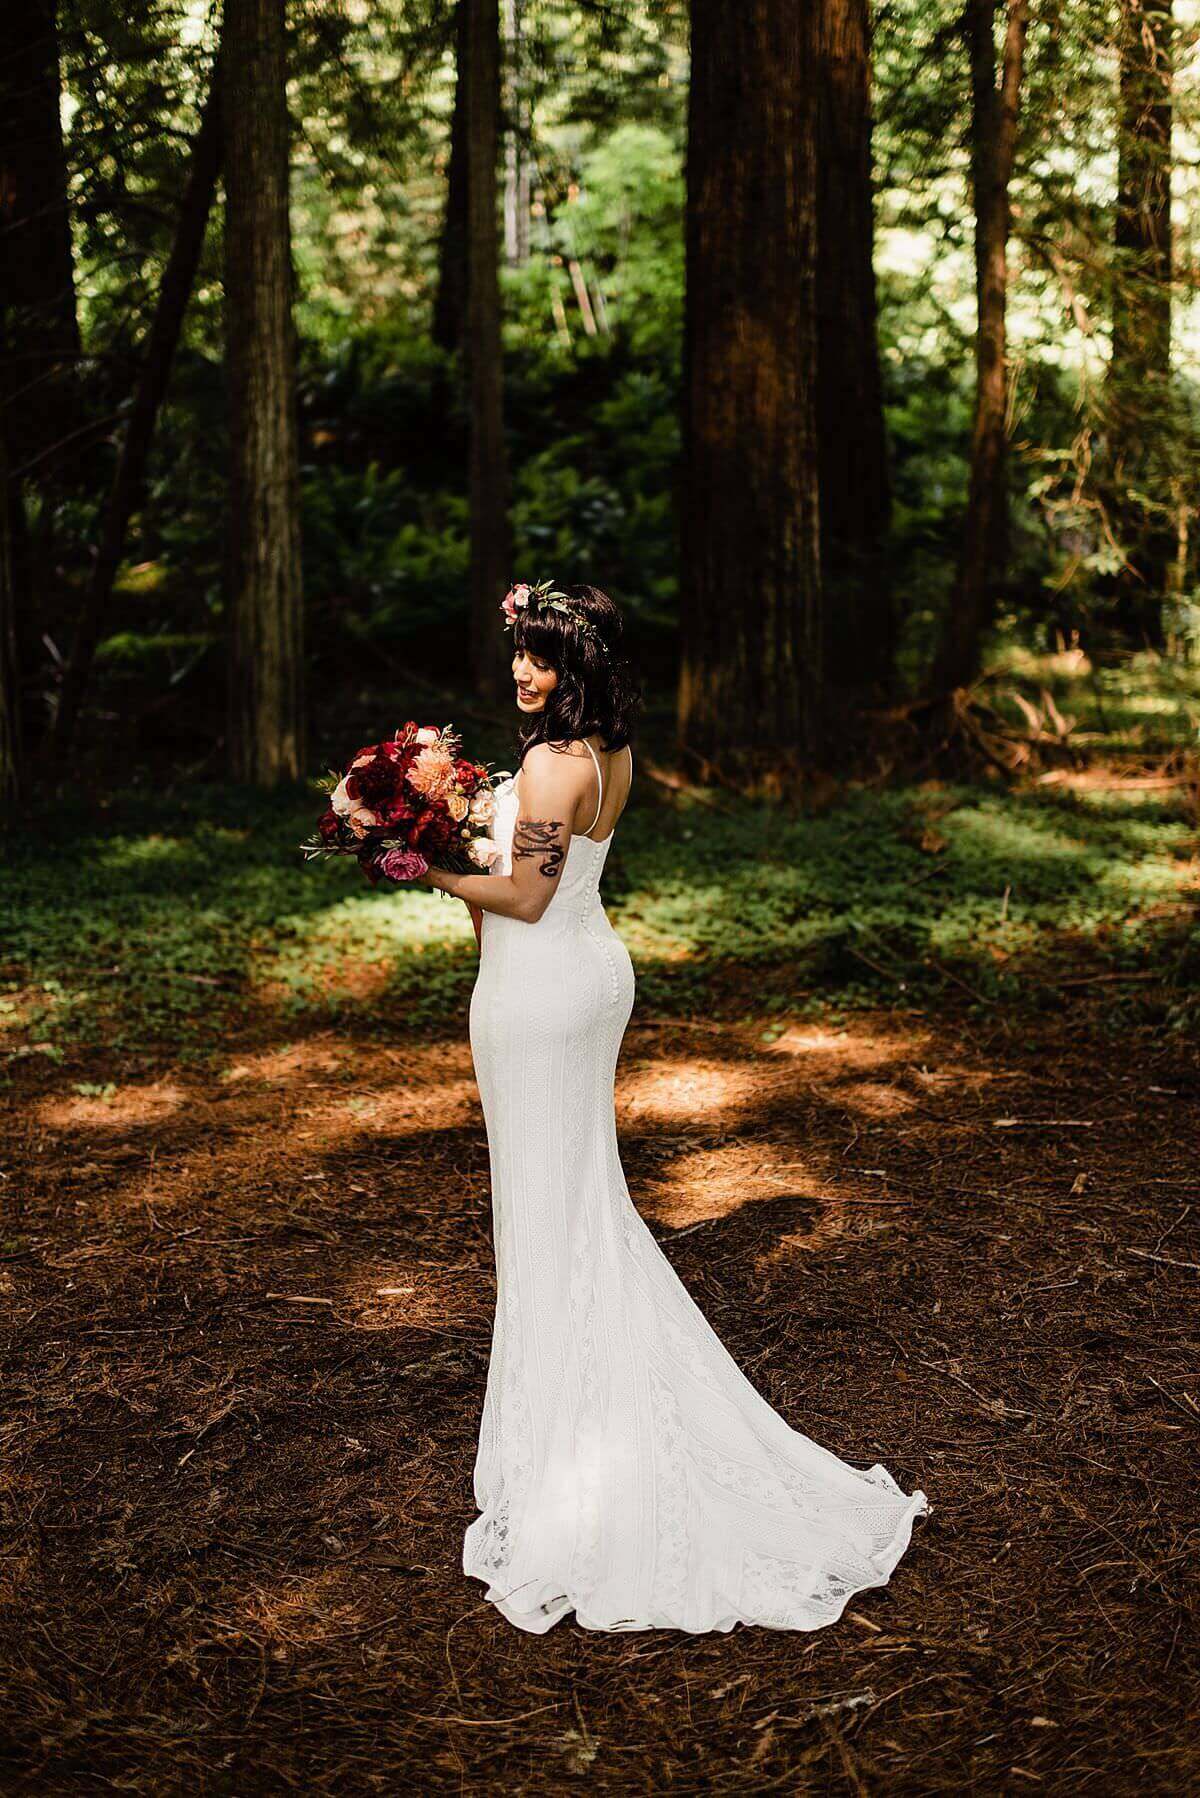 Allison-Brooks-Jedediah-Smiith-Redwoods-Adventure-Elopement-Wedding-S-Photography-Blog_0007.jpg